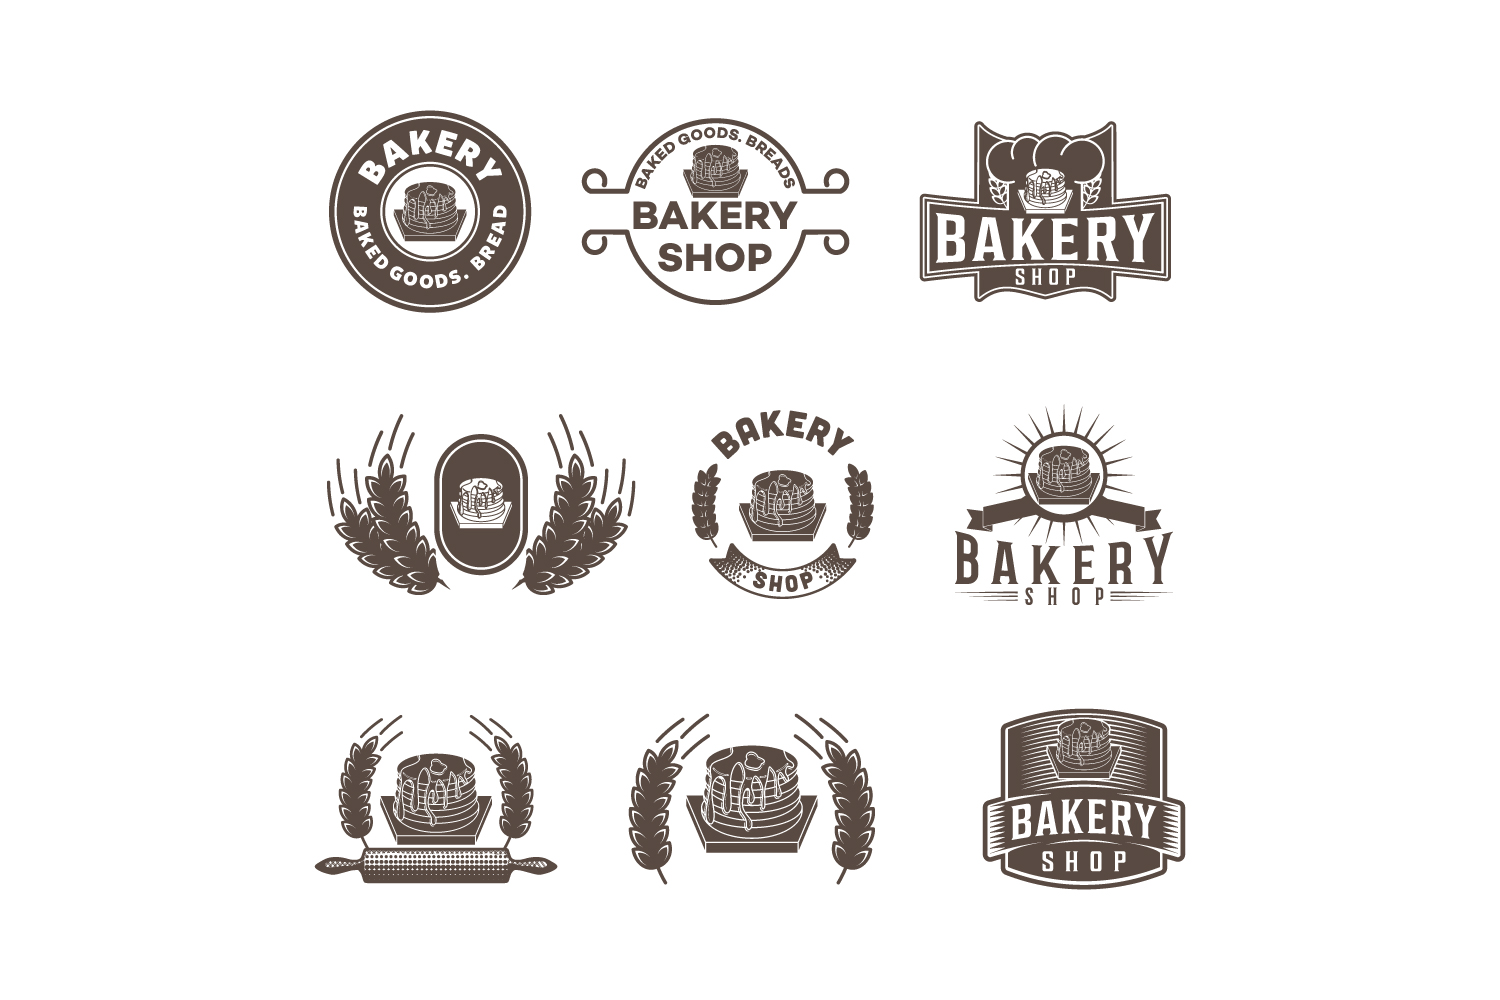 Download Free Logos Creative Fabrica for Cricut Explore, Silhouette and other cutting machines.